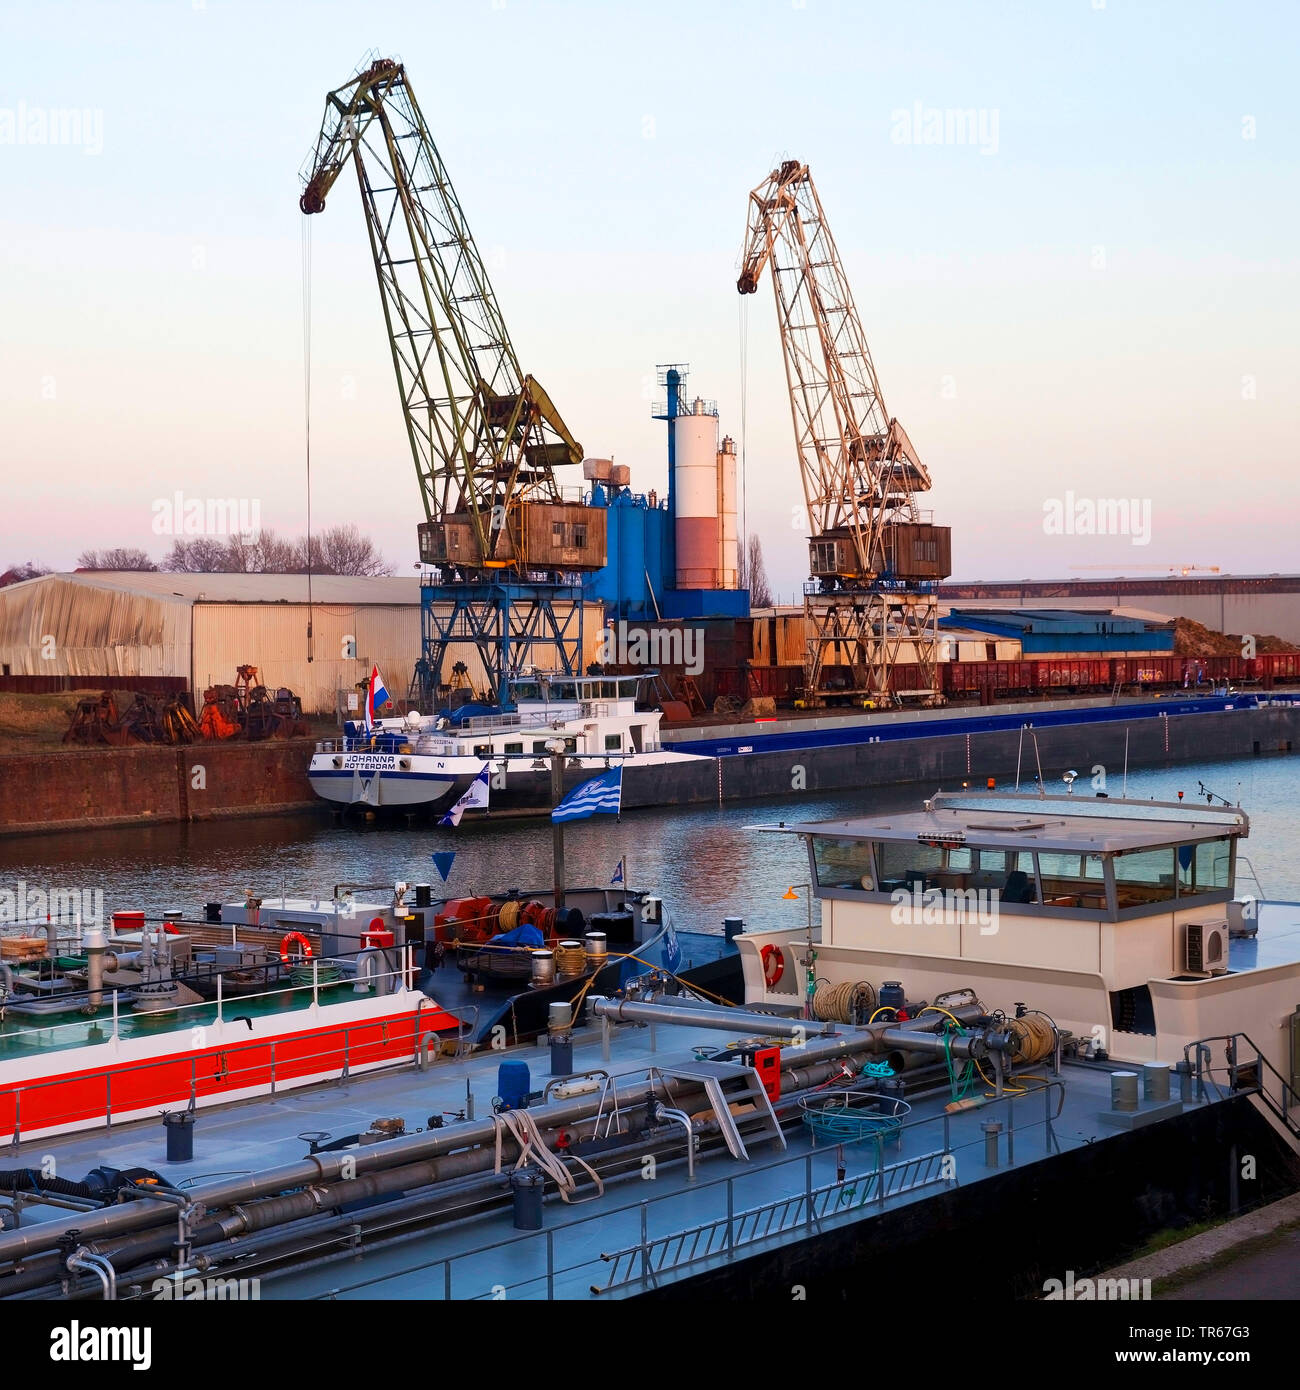 freight ships and cranes in inland port Duisburg, Germany, North Rhine-Westphalia, Ruhr Area, Duisburg - Stock Image